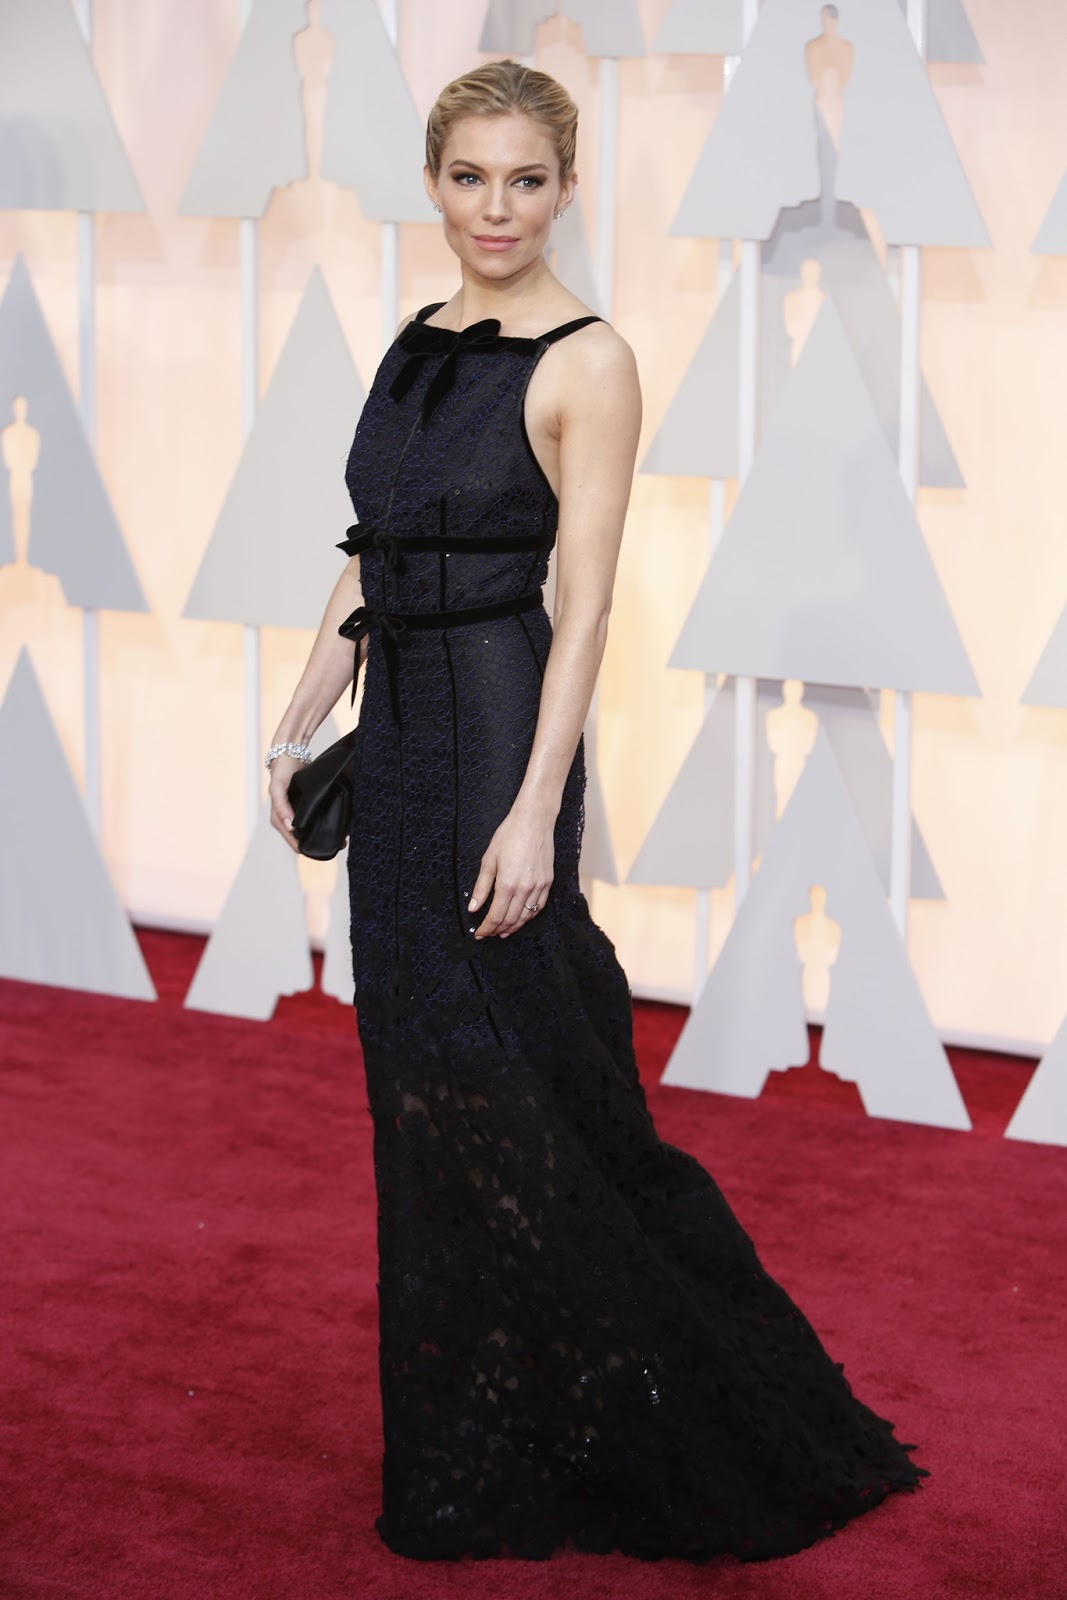 Sienna Miller in Oscar de la Renta at the Oscars 2015